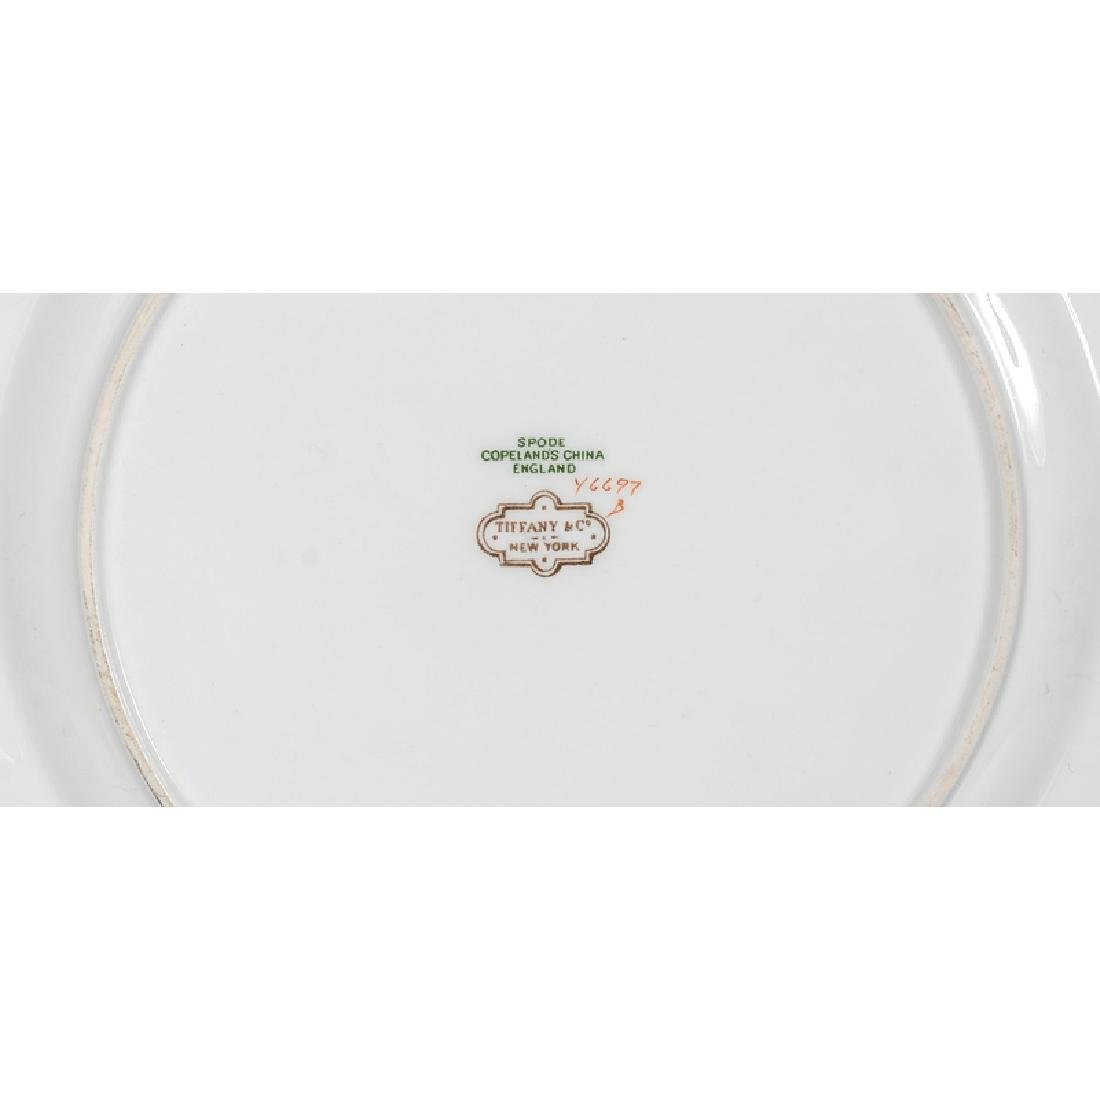 Spode Copeland Porcelain Plates, Retailed by Tiffany & - 2